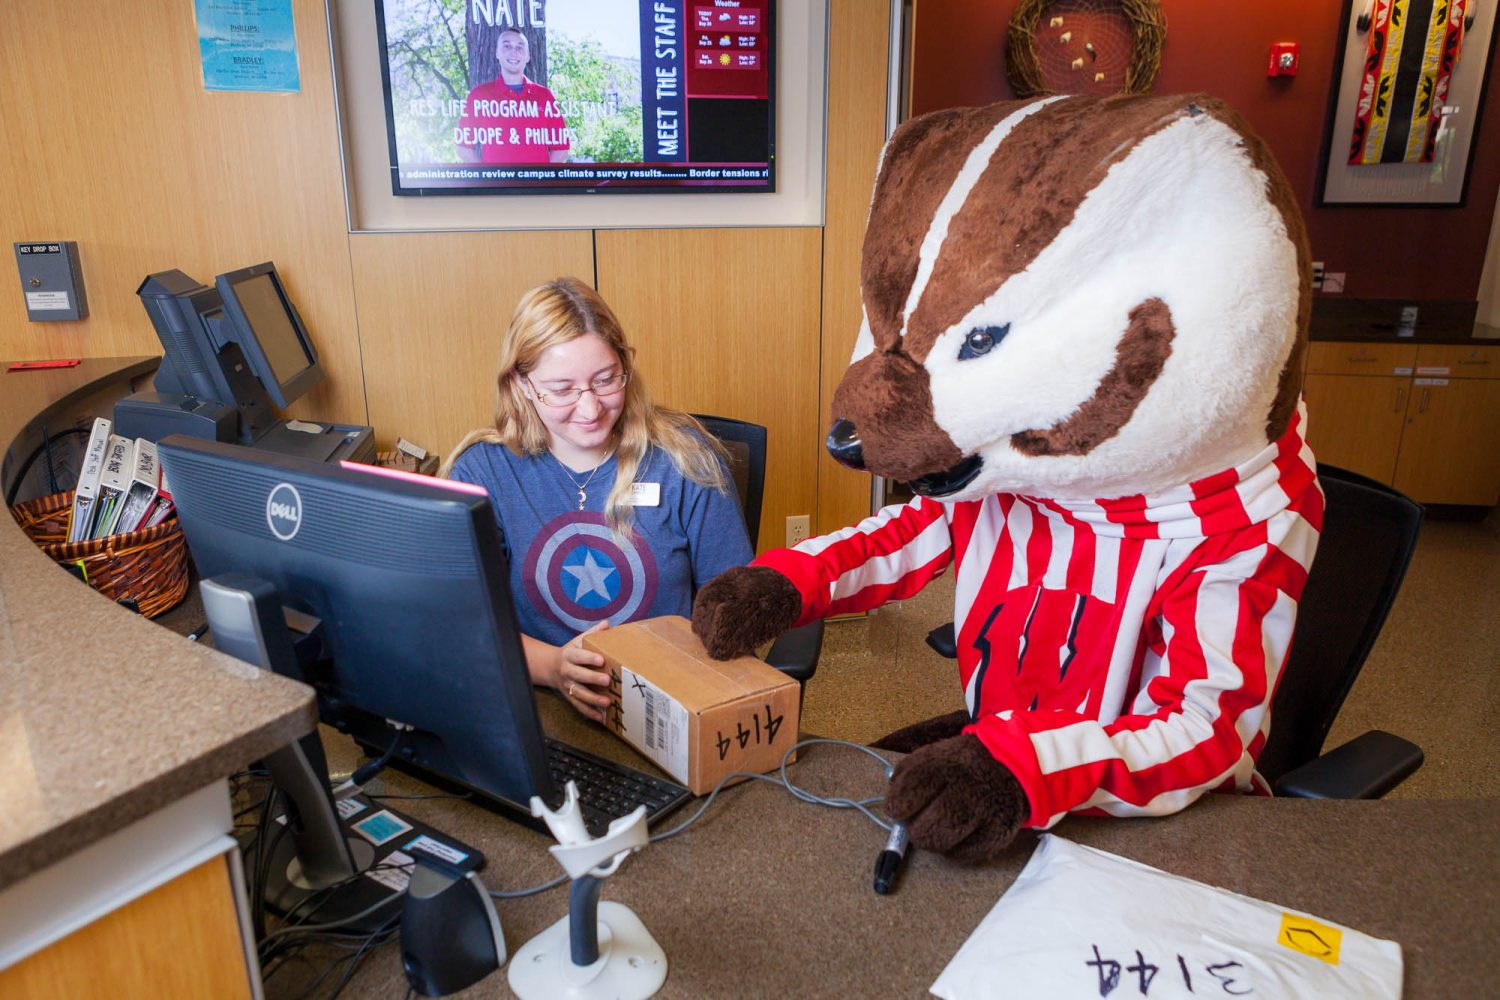 Bucky assisting a hall desk staff with checking-in a package